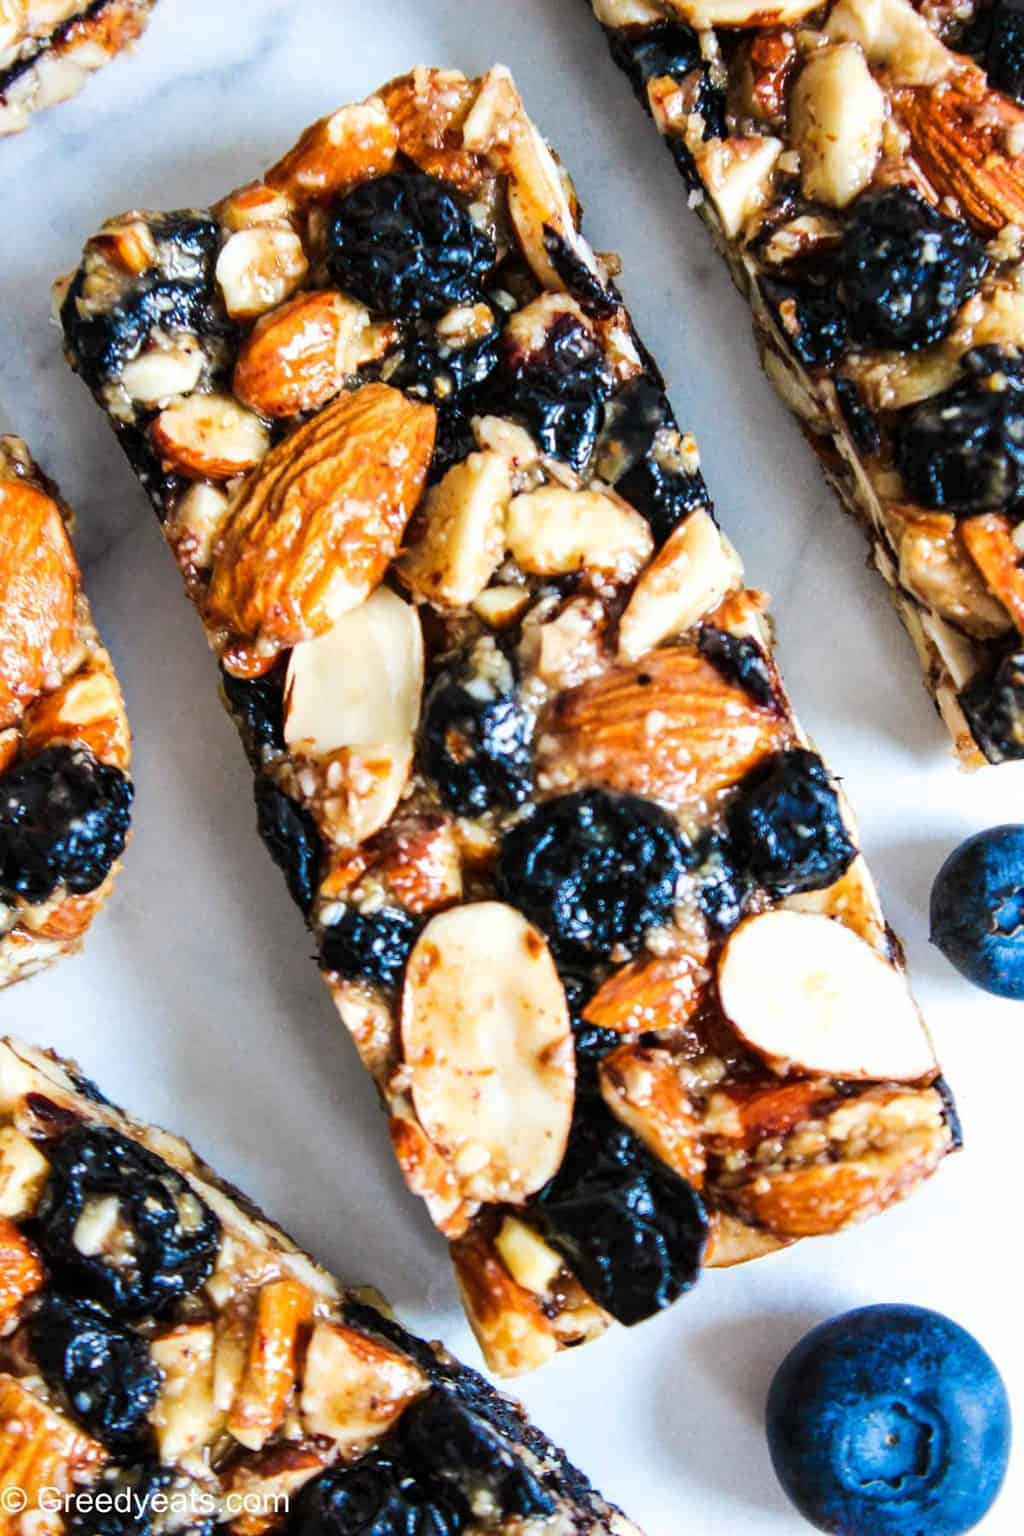 Made with 7 simple ingredients my Almond Bars Recipe is a perfect snack time treat.